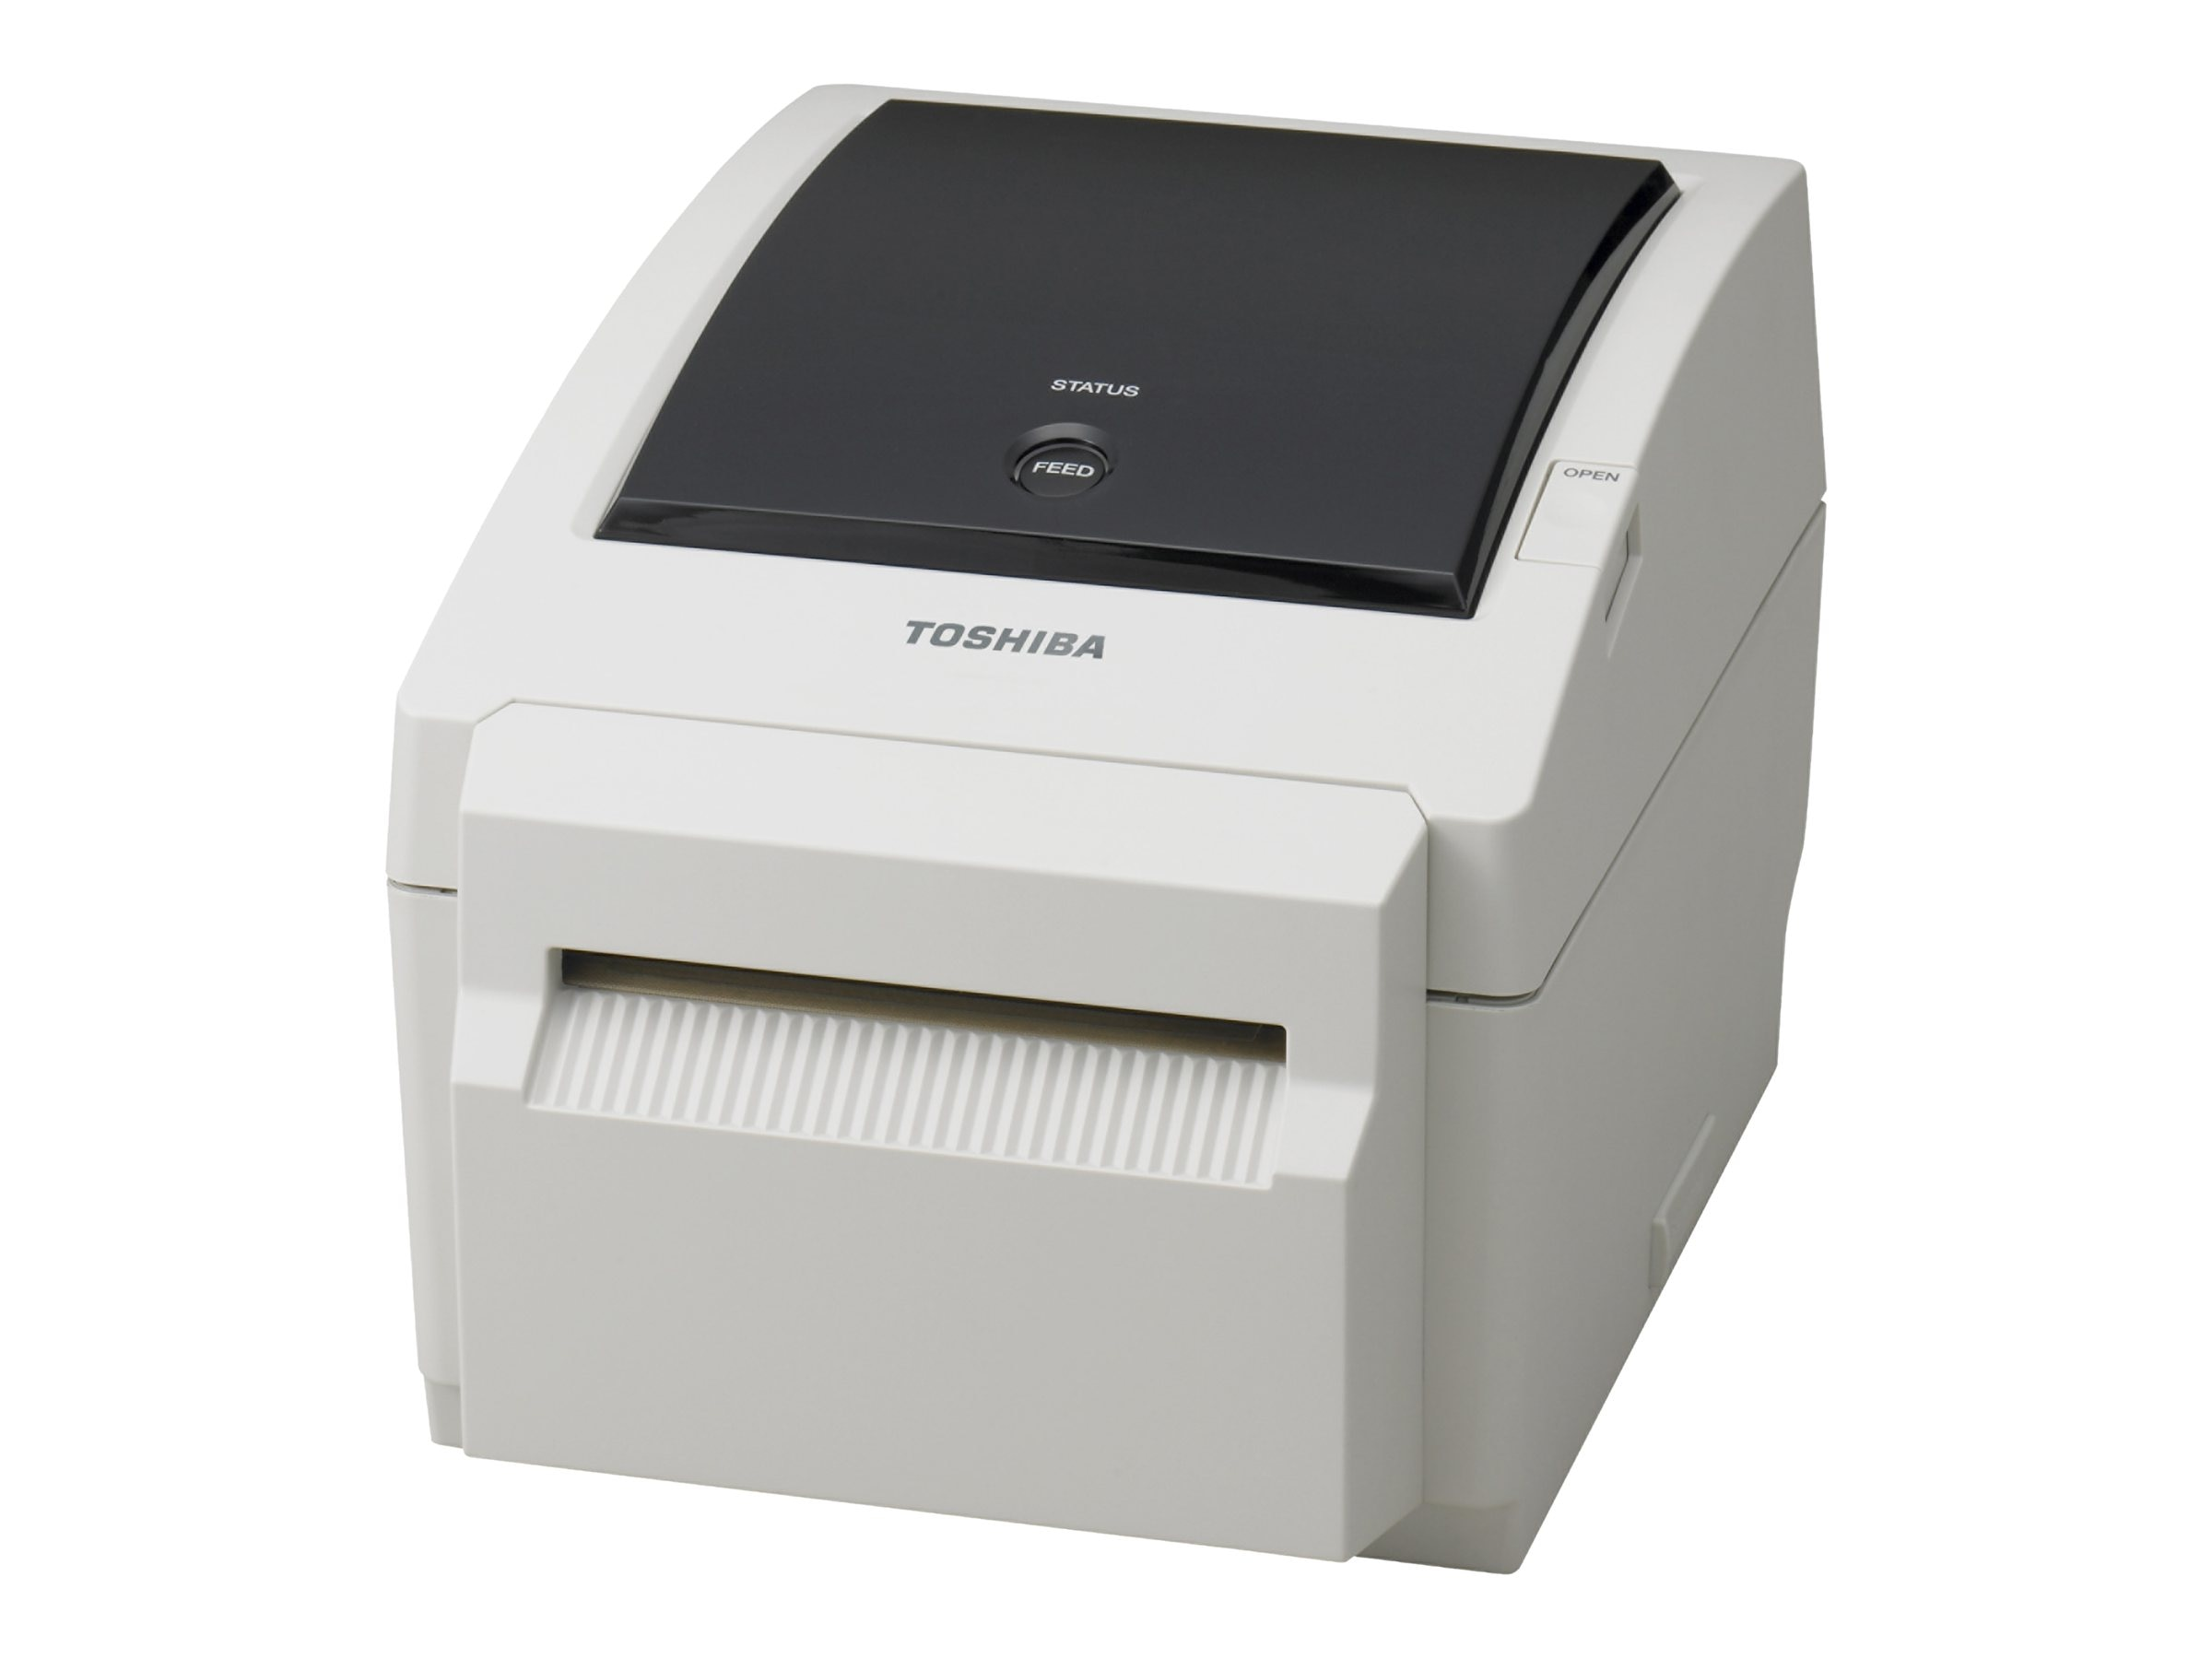 Toshiba B-EV4D GS 4 Wide 203dpi 5ips Direct Thermal Desktop Printer